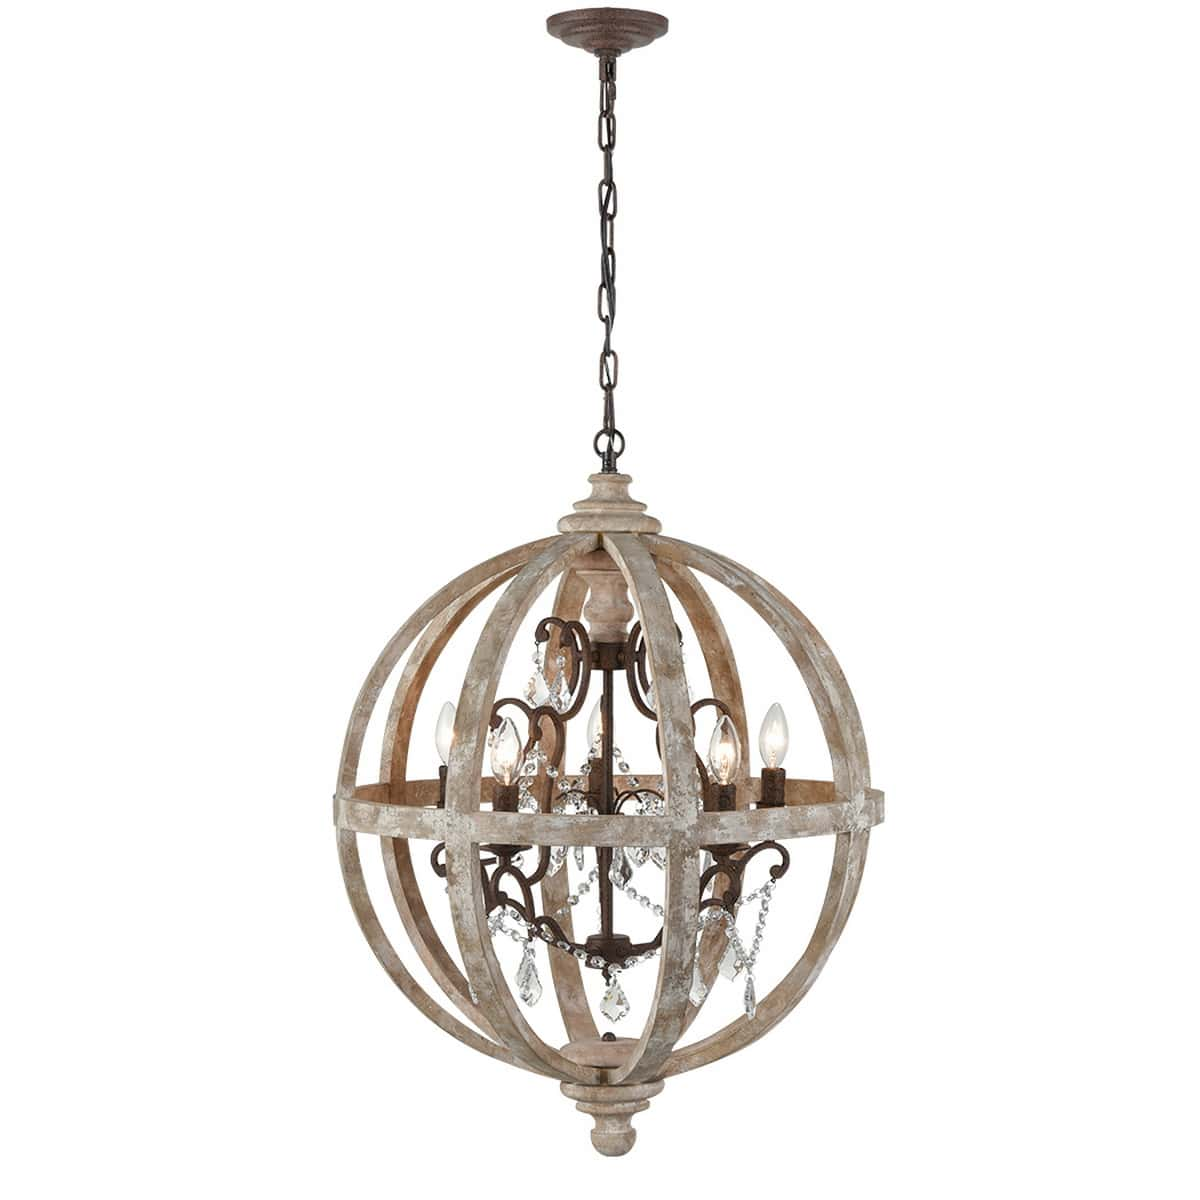 Farmhouse Weathered Wooden Globe Pendant Chandelier-Medium